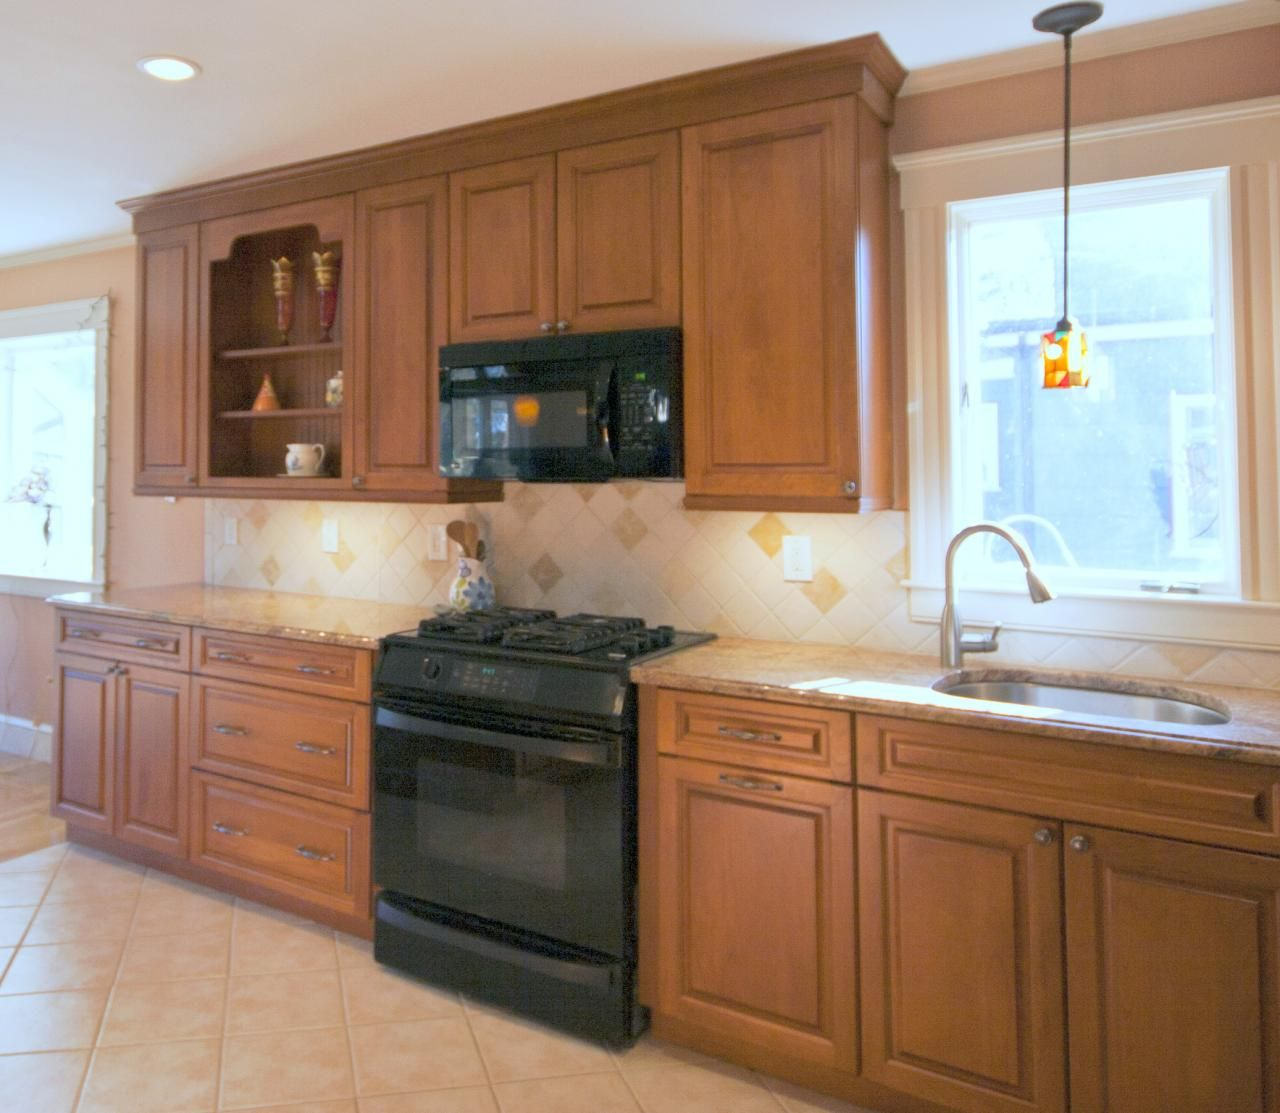 Kitchen Remodel Black Appliances: Traditional Cherry Kitchen With Black Appliances